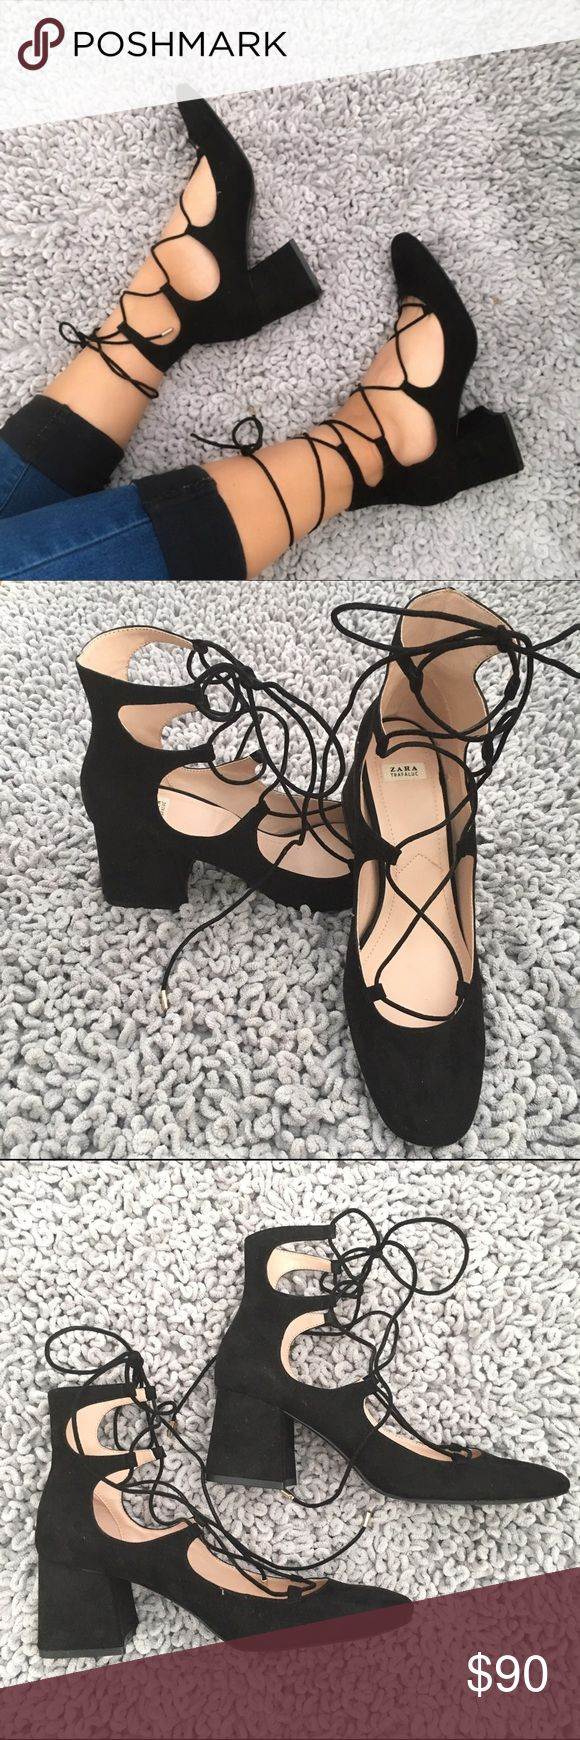 Zara Lace Up Heels Sold out black faux suede lace up strappy heels from Zara!  Extremely on trend and sought after! Low chunky block heels Size 8  Worn one time only! In perfect condition. Comes with original box Zara Shoes Heels